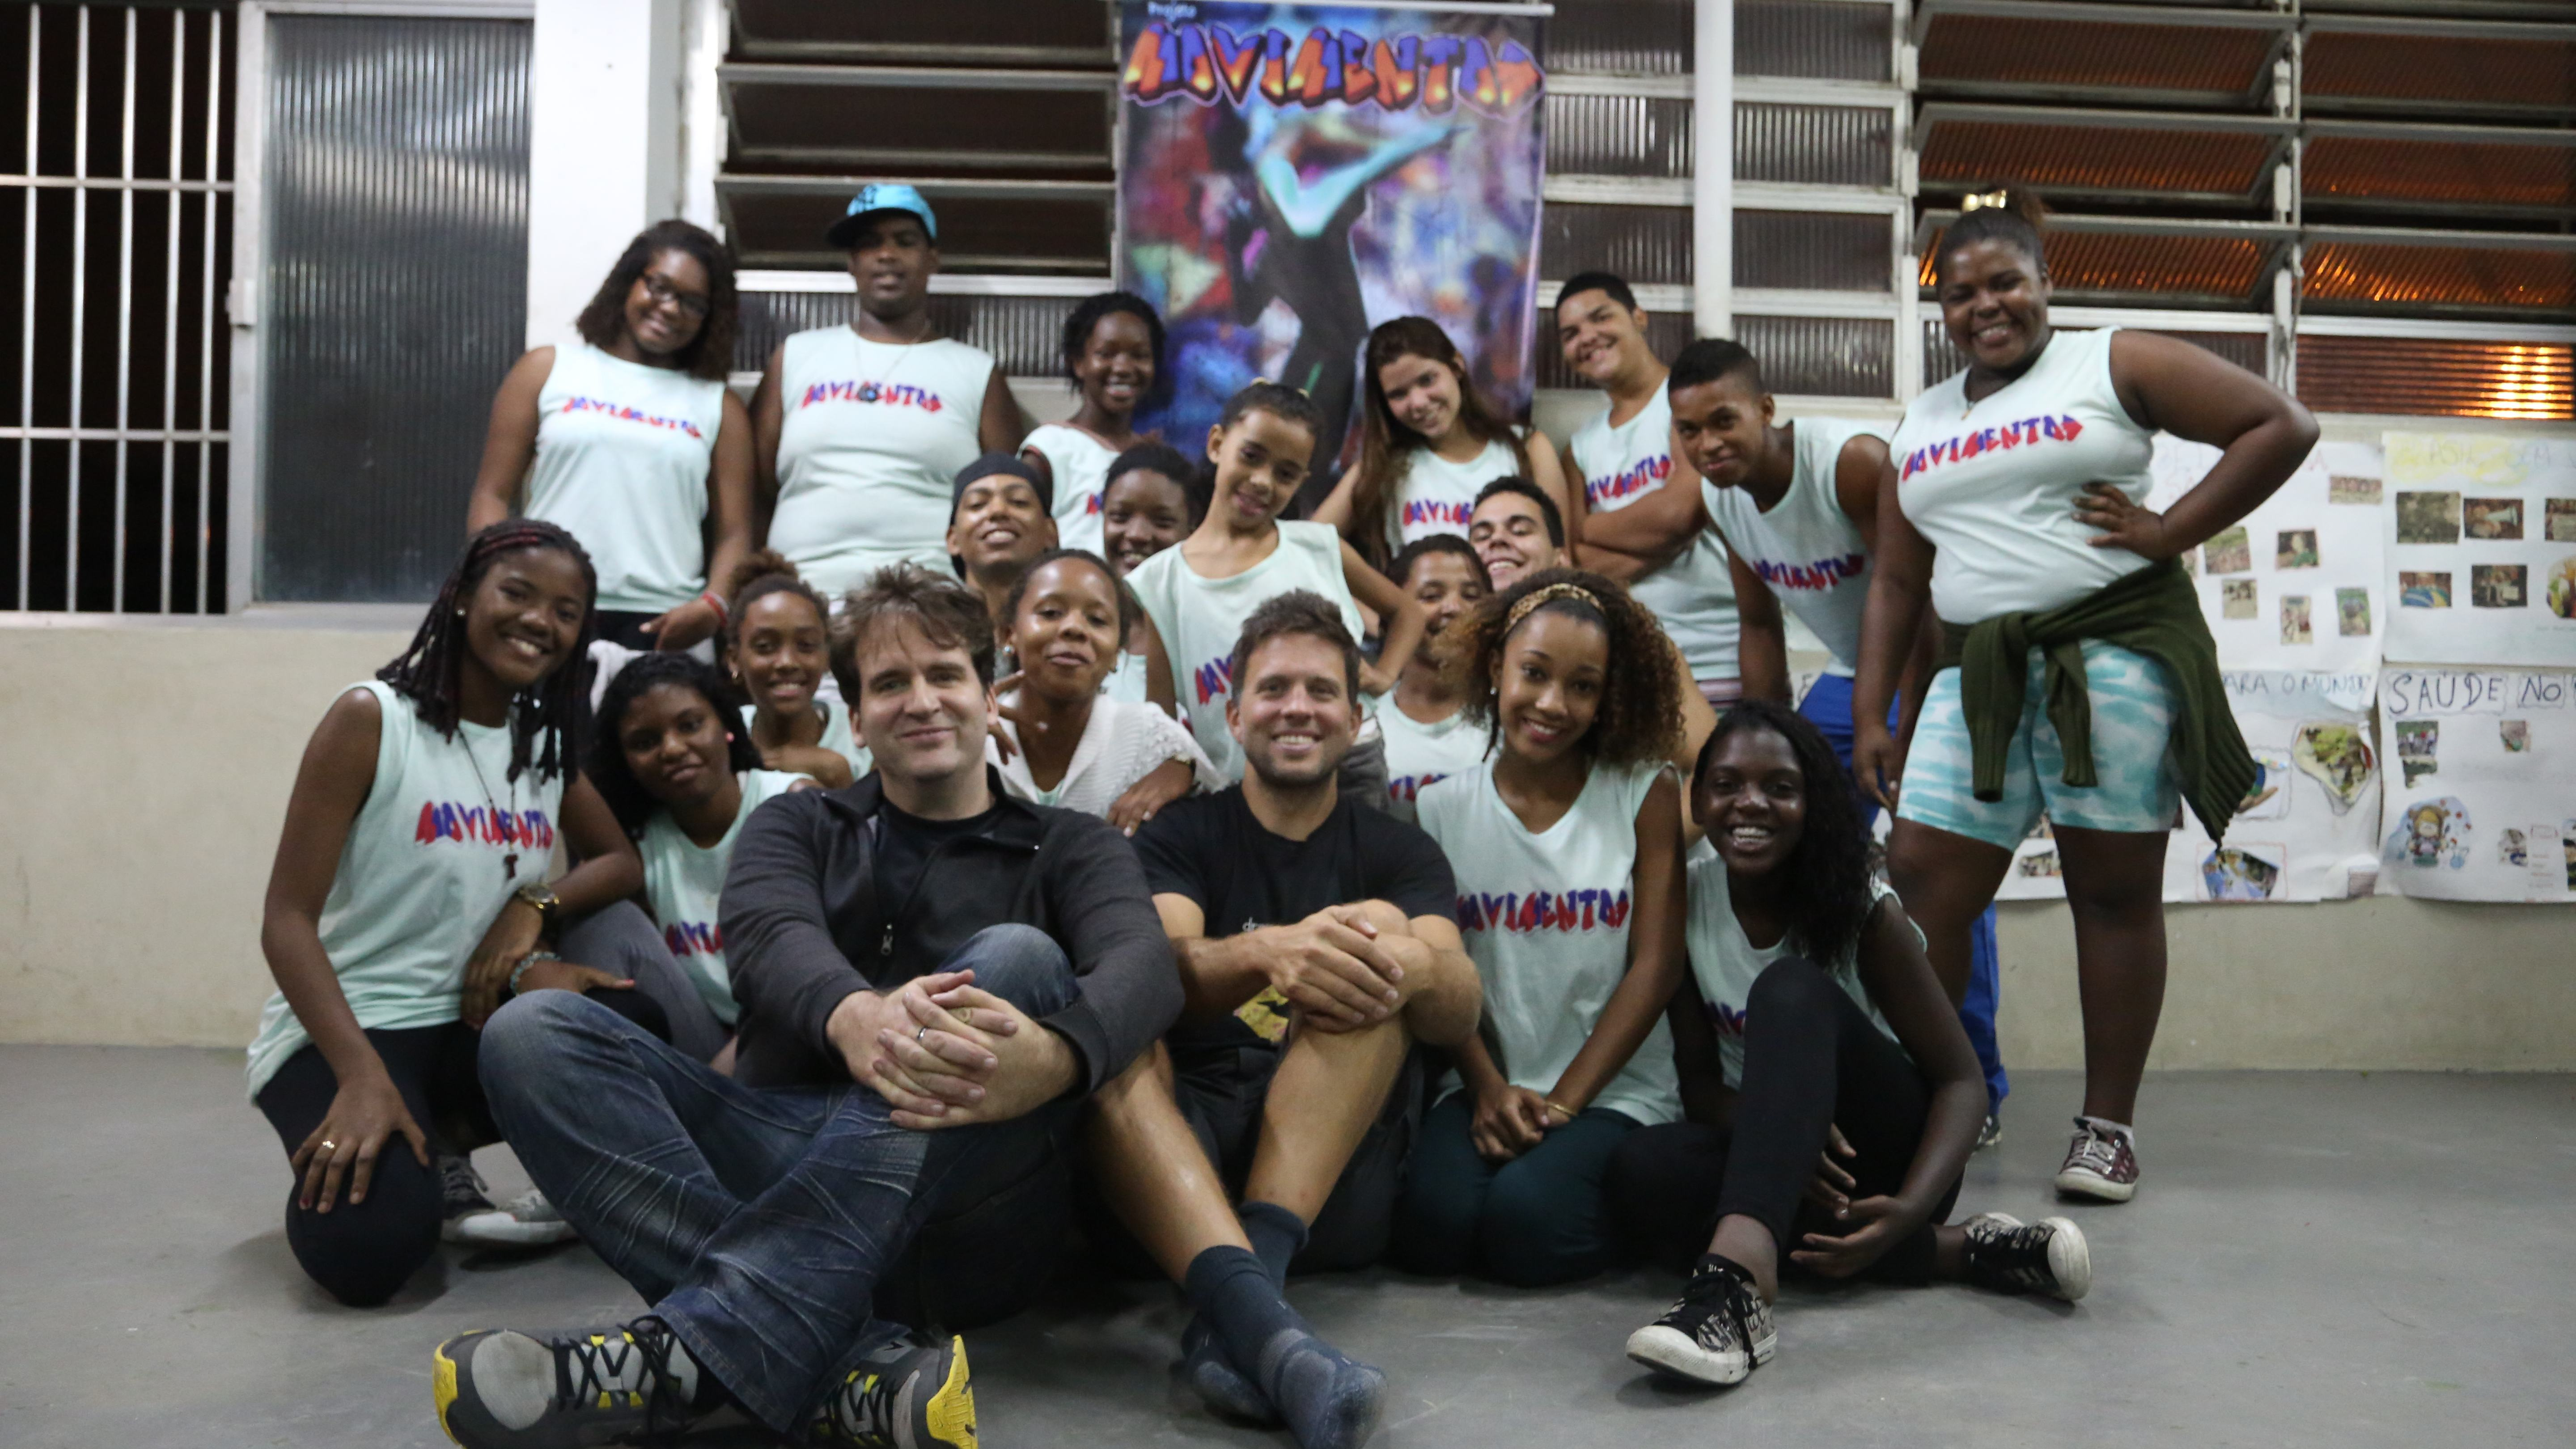 Adany Lima runs the only youth dance troupe, Movimentos, in Cidade de Deos, a favela made famous by a movie of the same name.